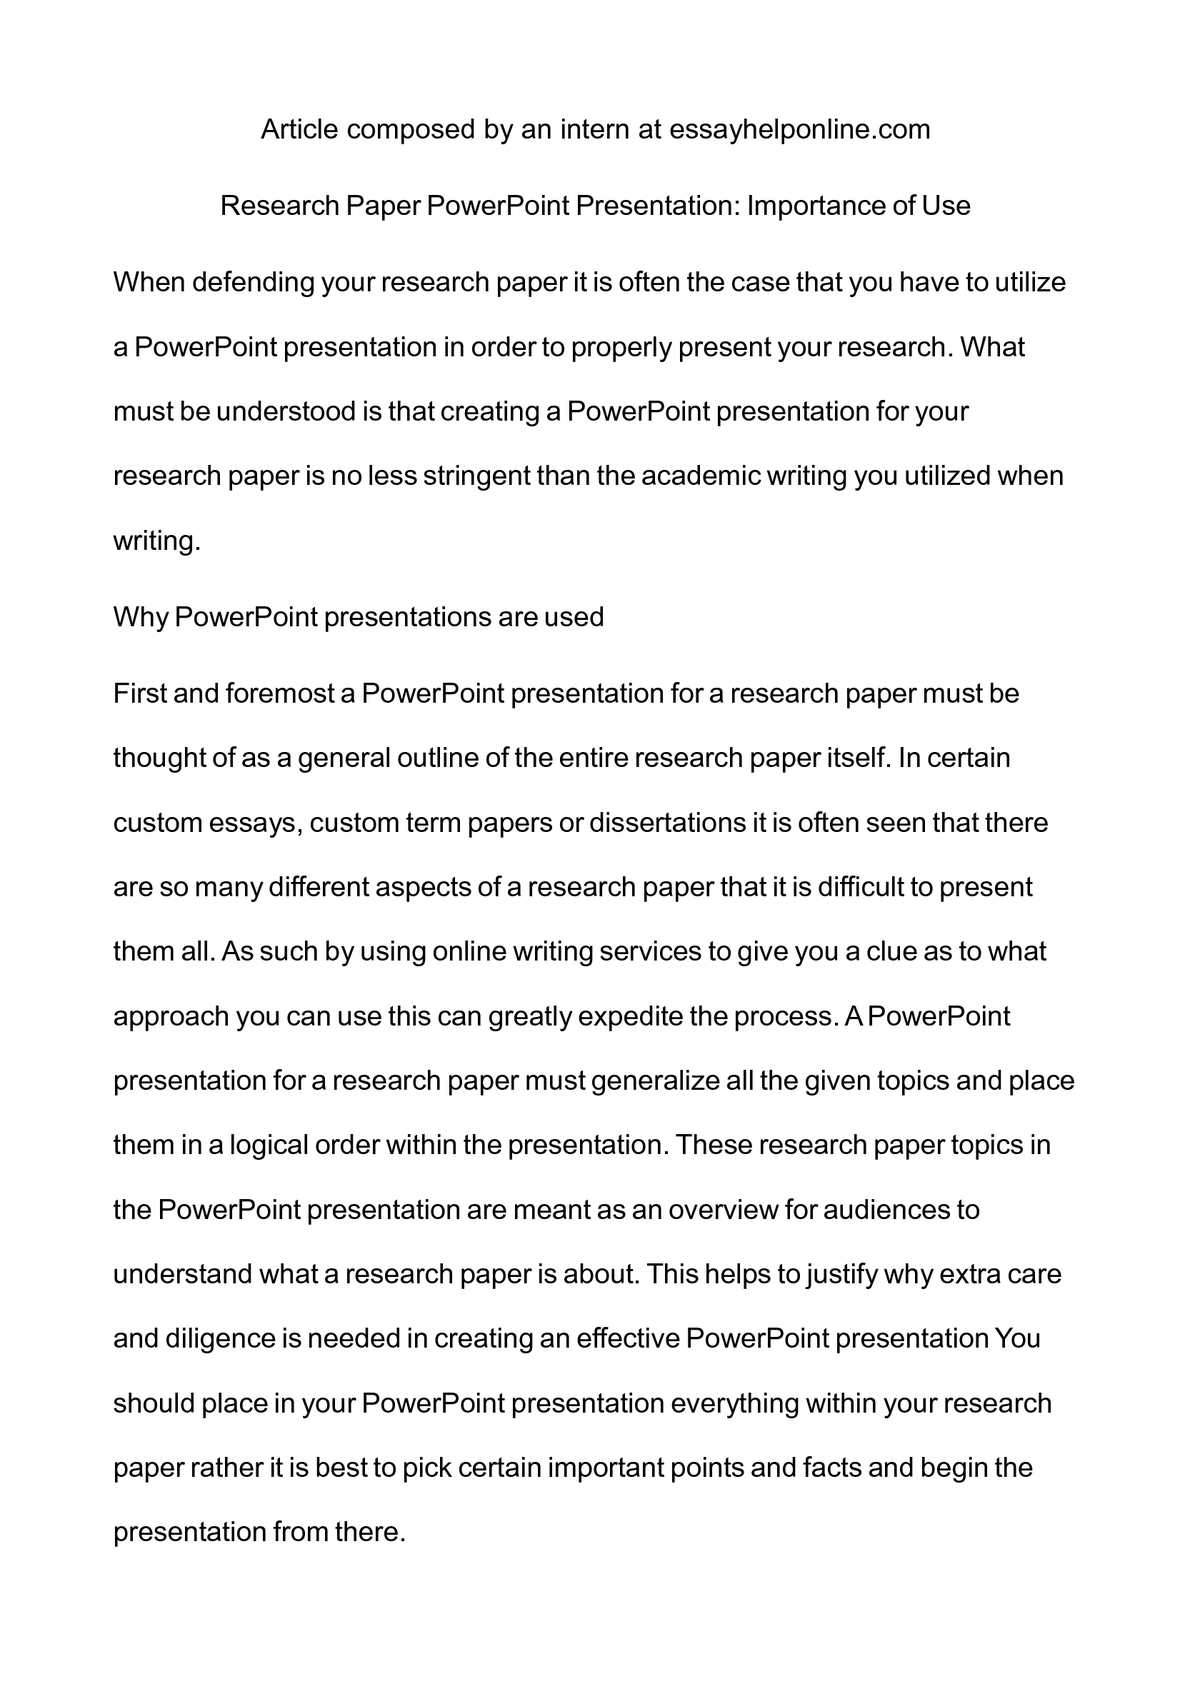 004 How To Research Paper Ppt Outstanding Publish Write Abstract For Prepare Full